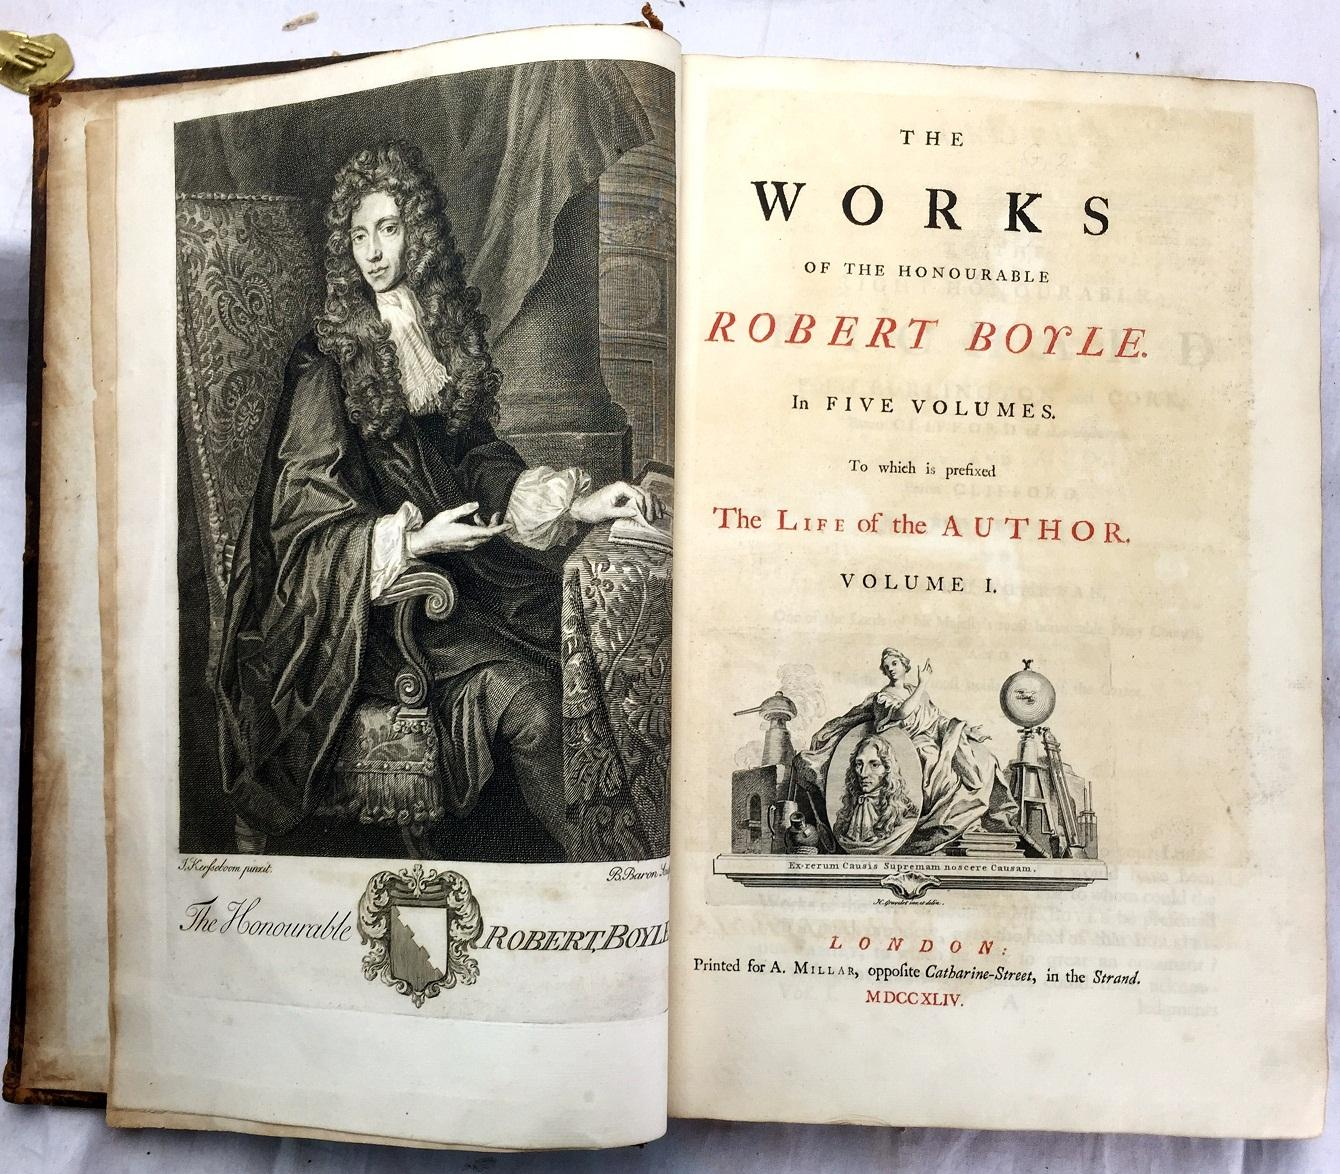 the life and works of robert boyle Robert boyle's natural theology by harold fisch i more, life and works of the hon robert boyle (oxford univ press, i944) ch xi, passim.